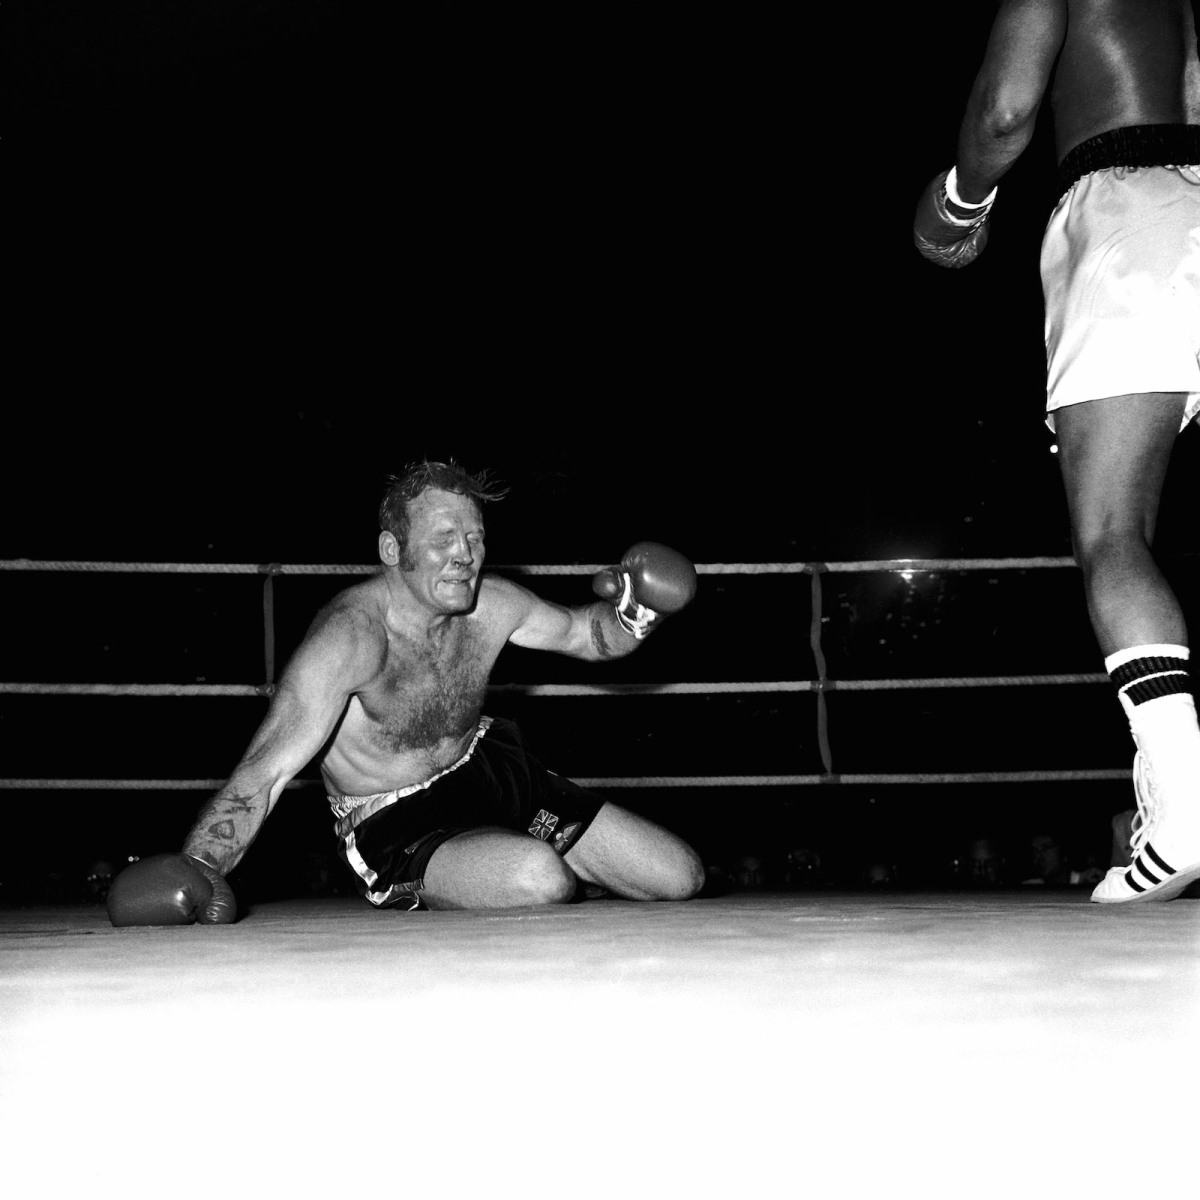 Richard Dunn grimaces as he hits the canvas again, one of five knockdowns he suffered during his 1976 fight against Muhammad Ali, one of boxing's great mismatches.  (PA Images via Getty Images)